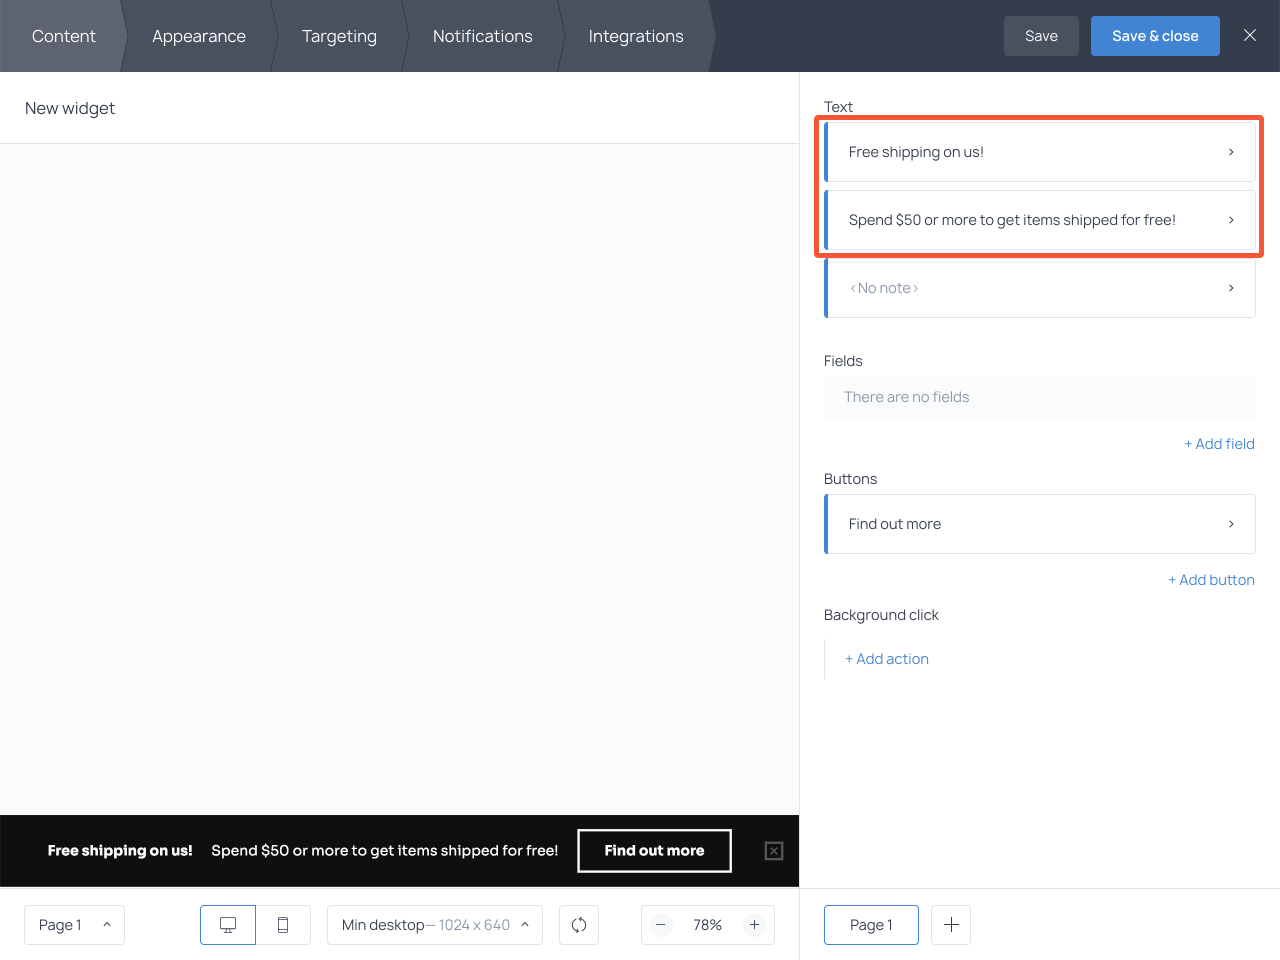 How to customize the copy on the free shipping bar